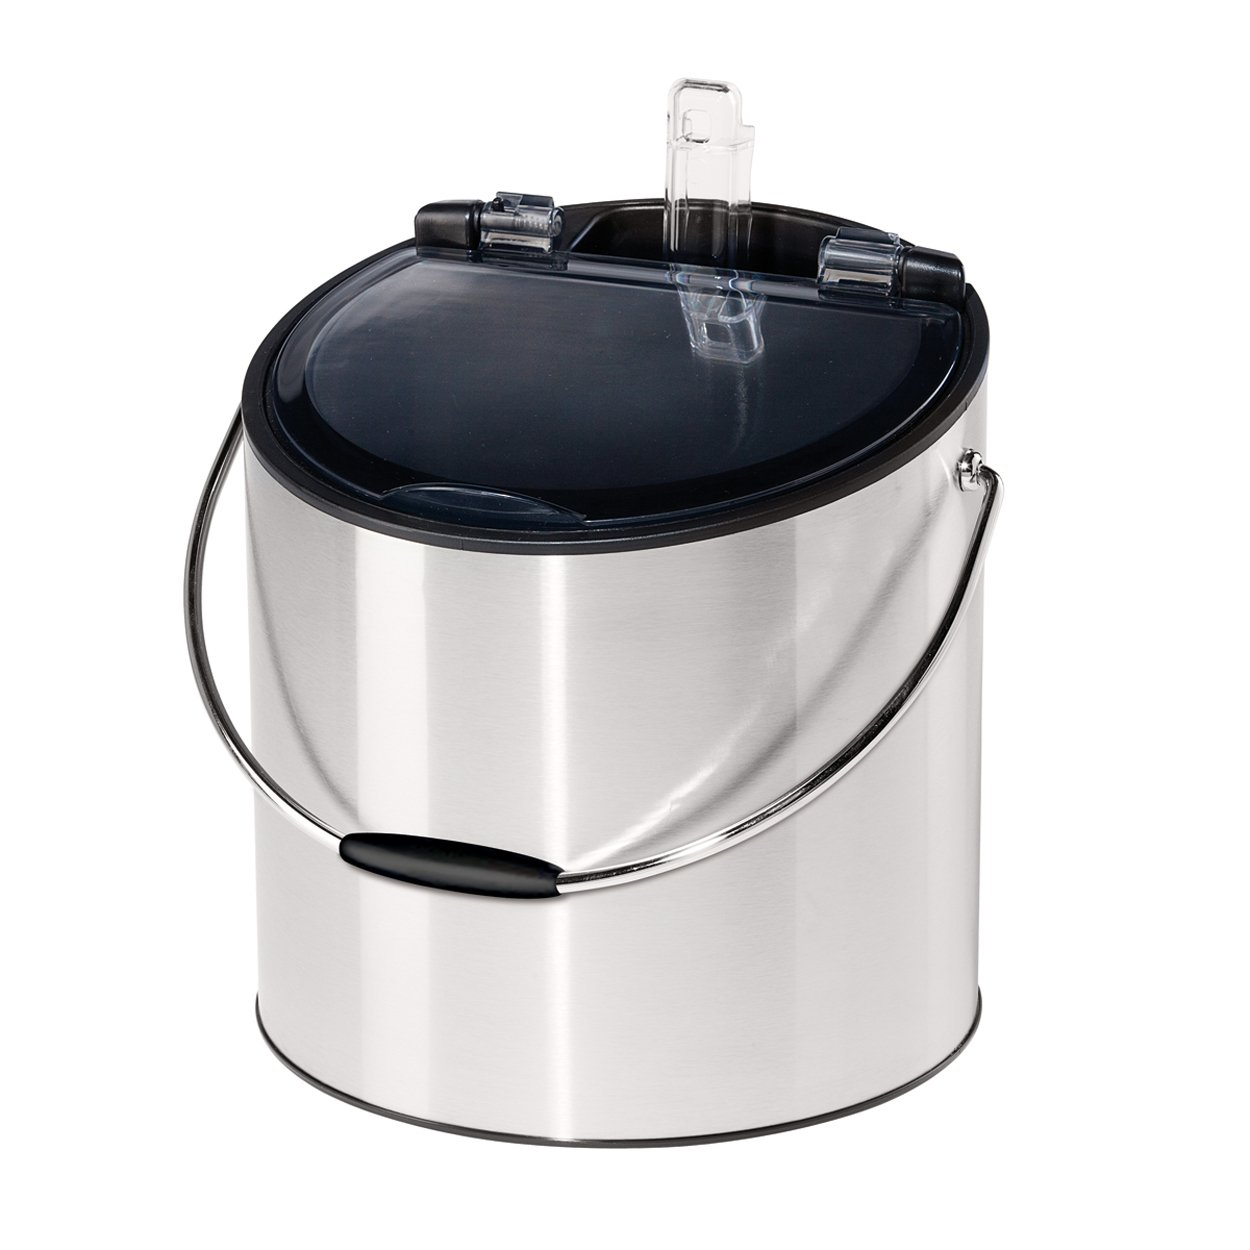 Oggi 7440 Stainless Steel Ice and Wine Bucket with Flip Top Lid and Ice Scoop, Holds 2 Bottles by Oggi